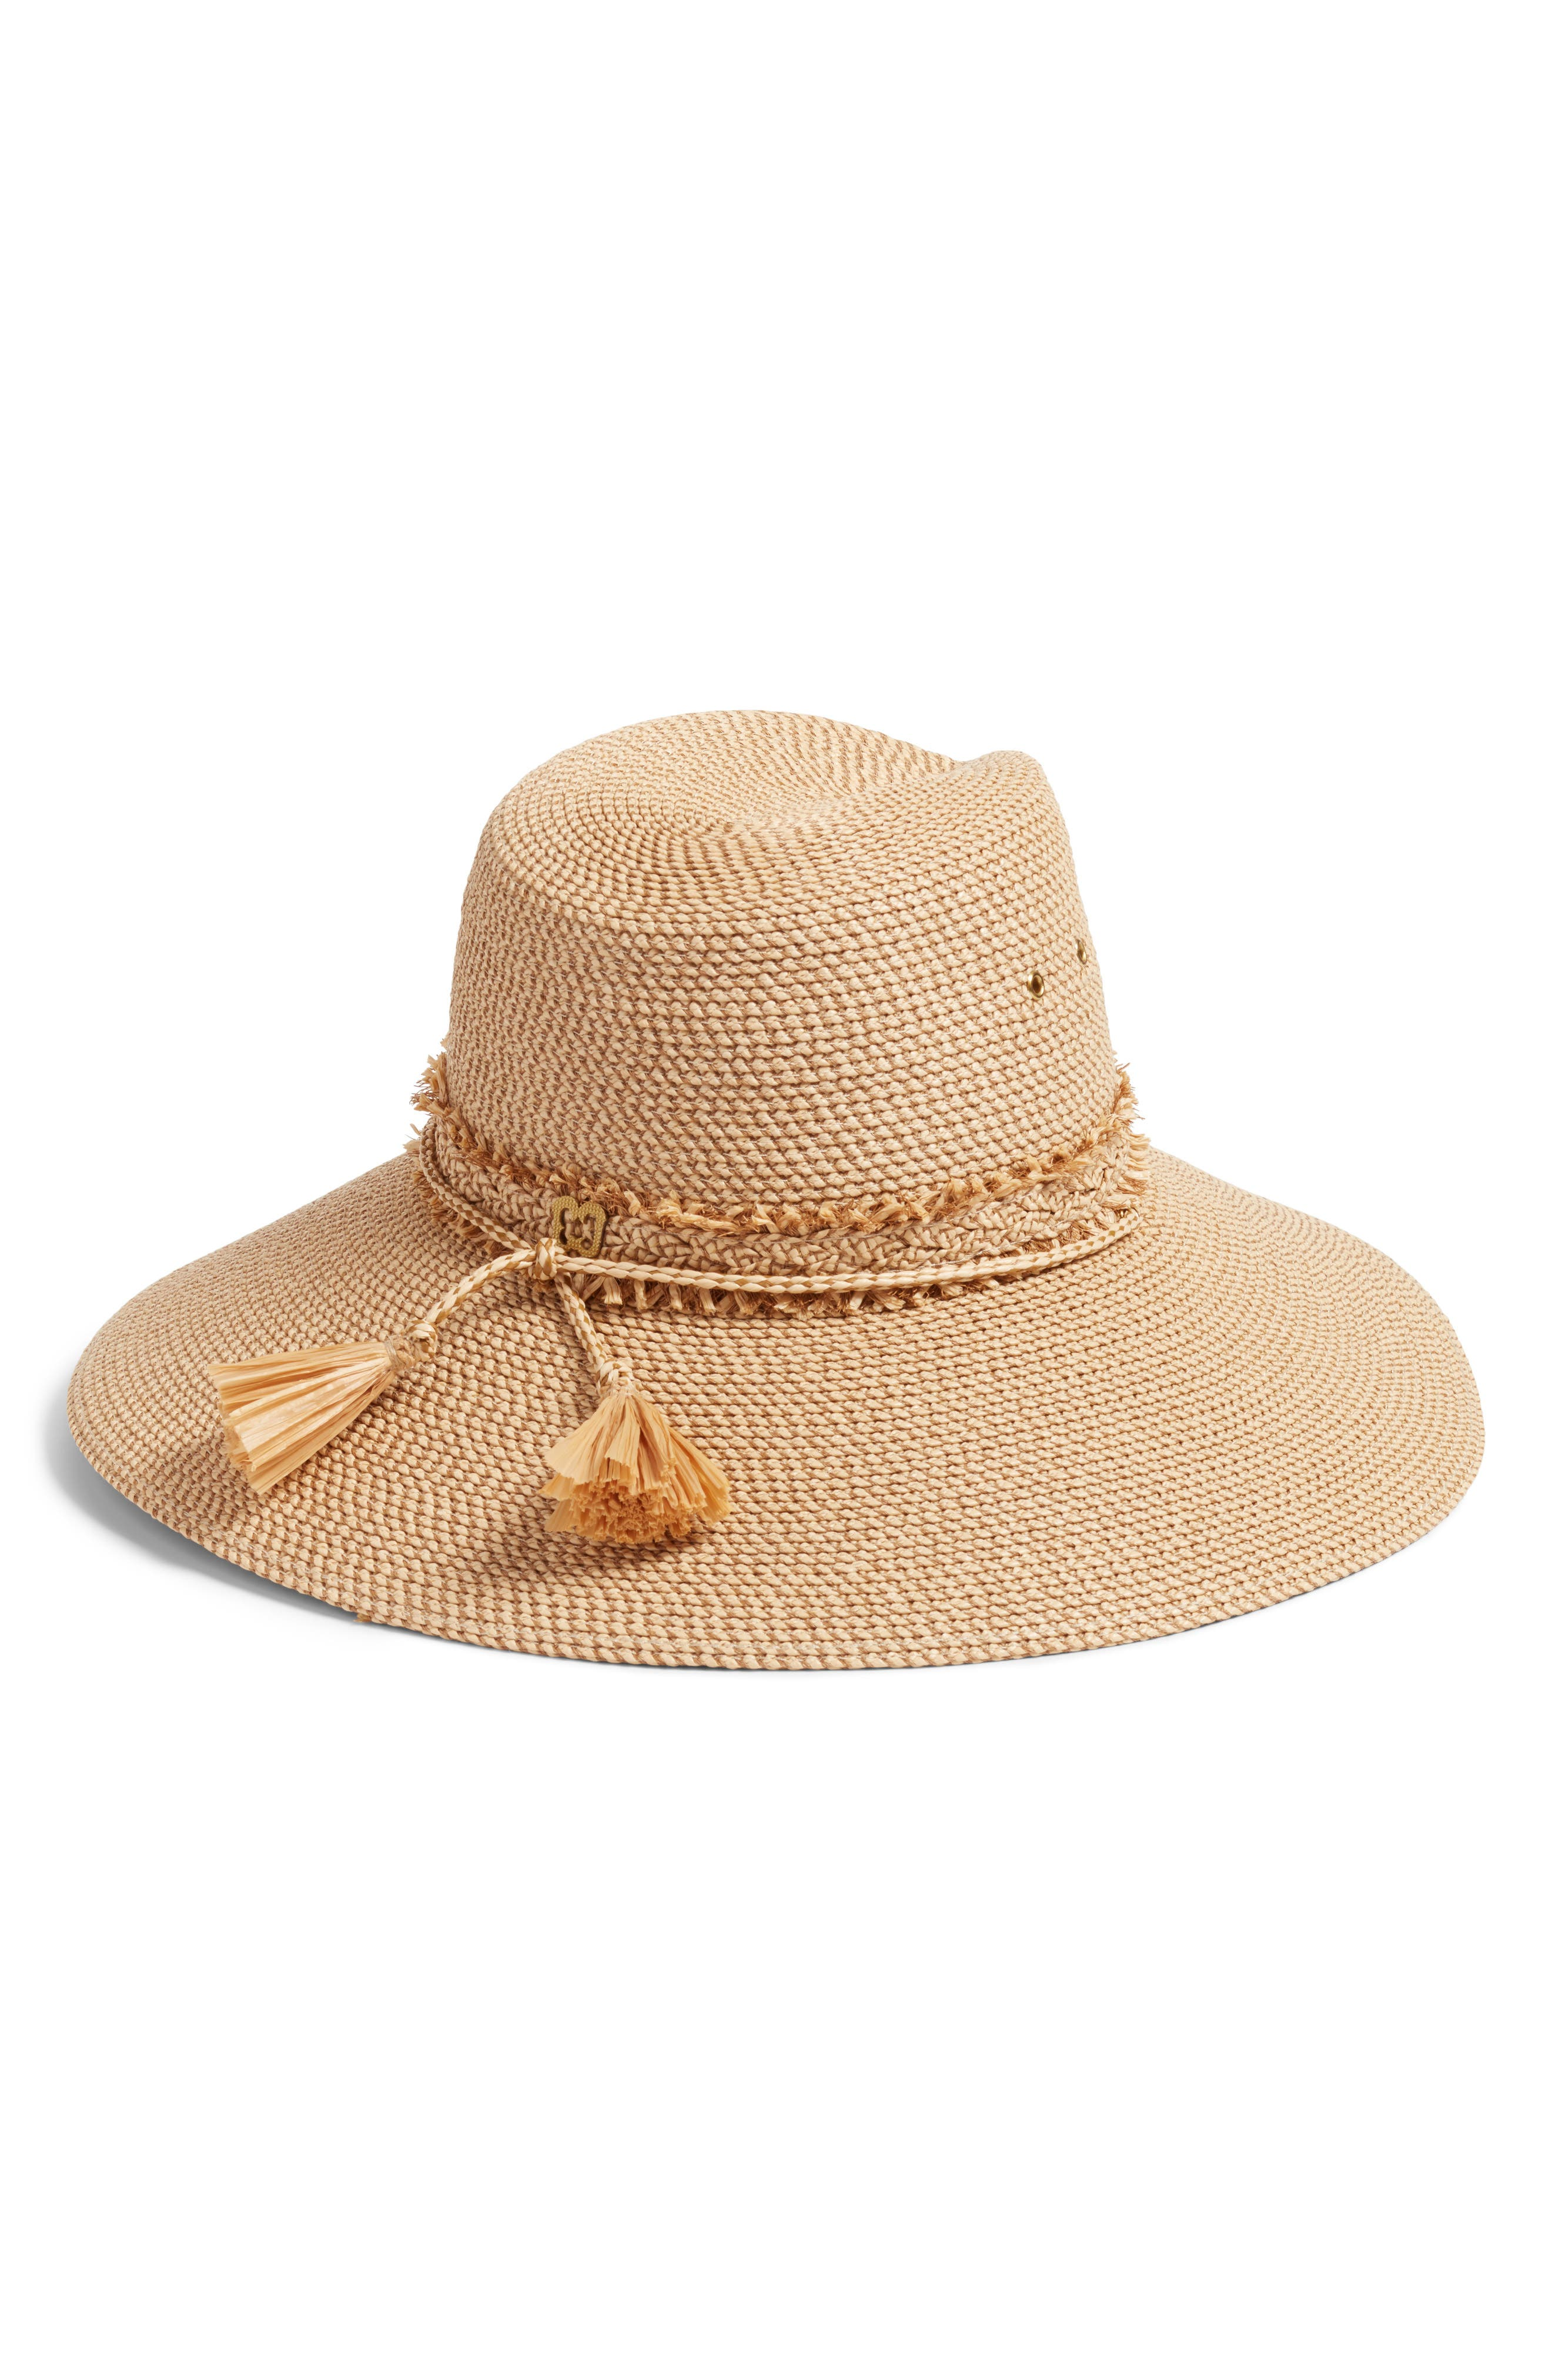 Voyager Squishee<sup>®</sup> Sun Hat,                             Alternate thumbnail 2, color,